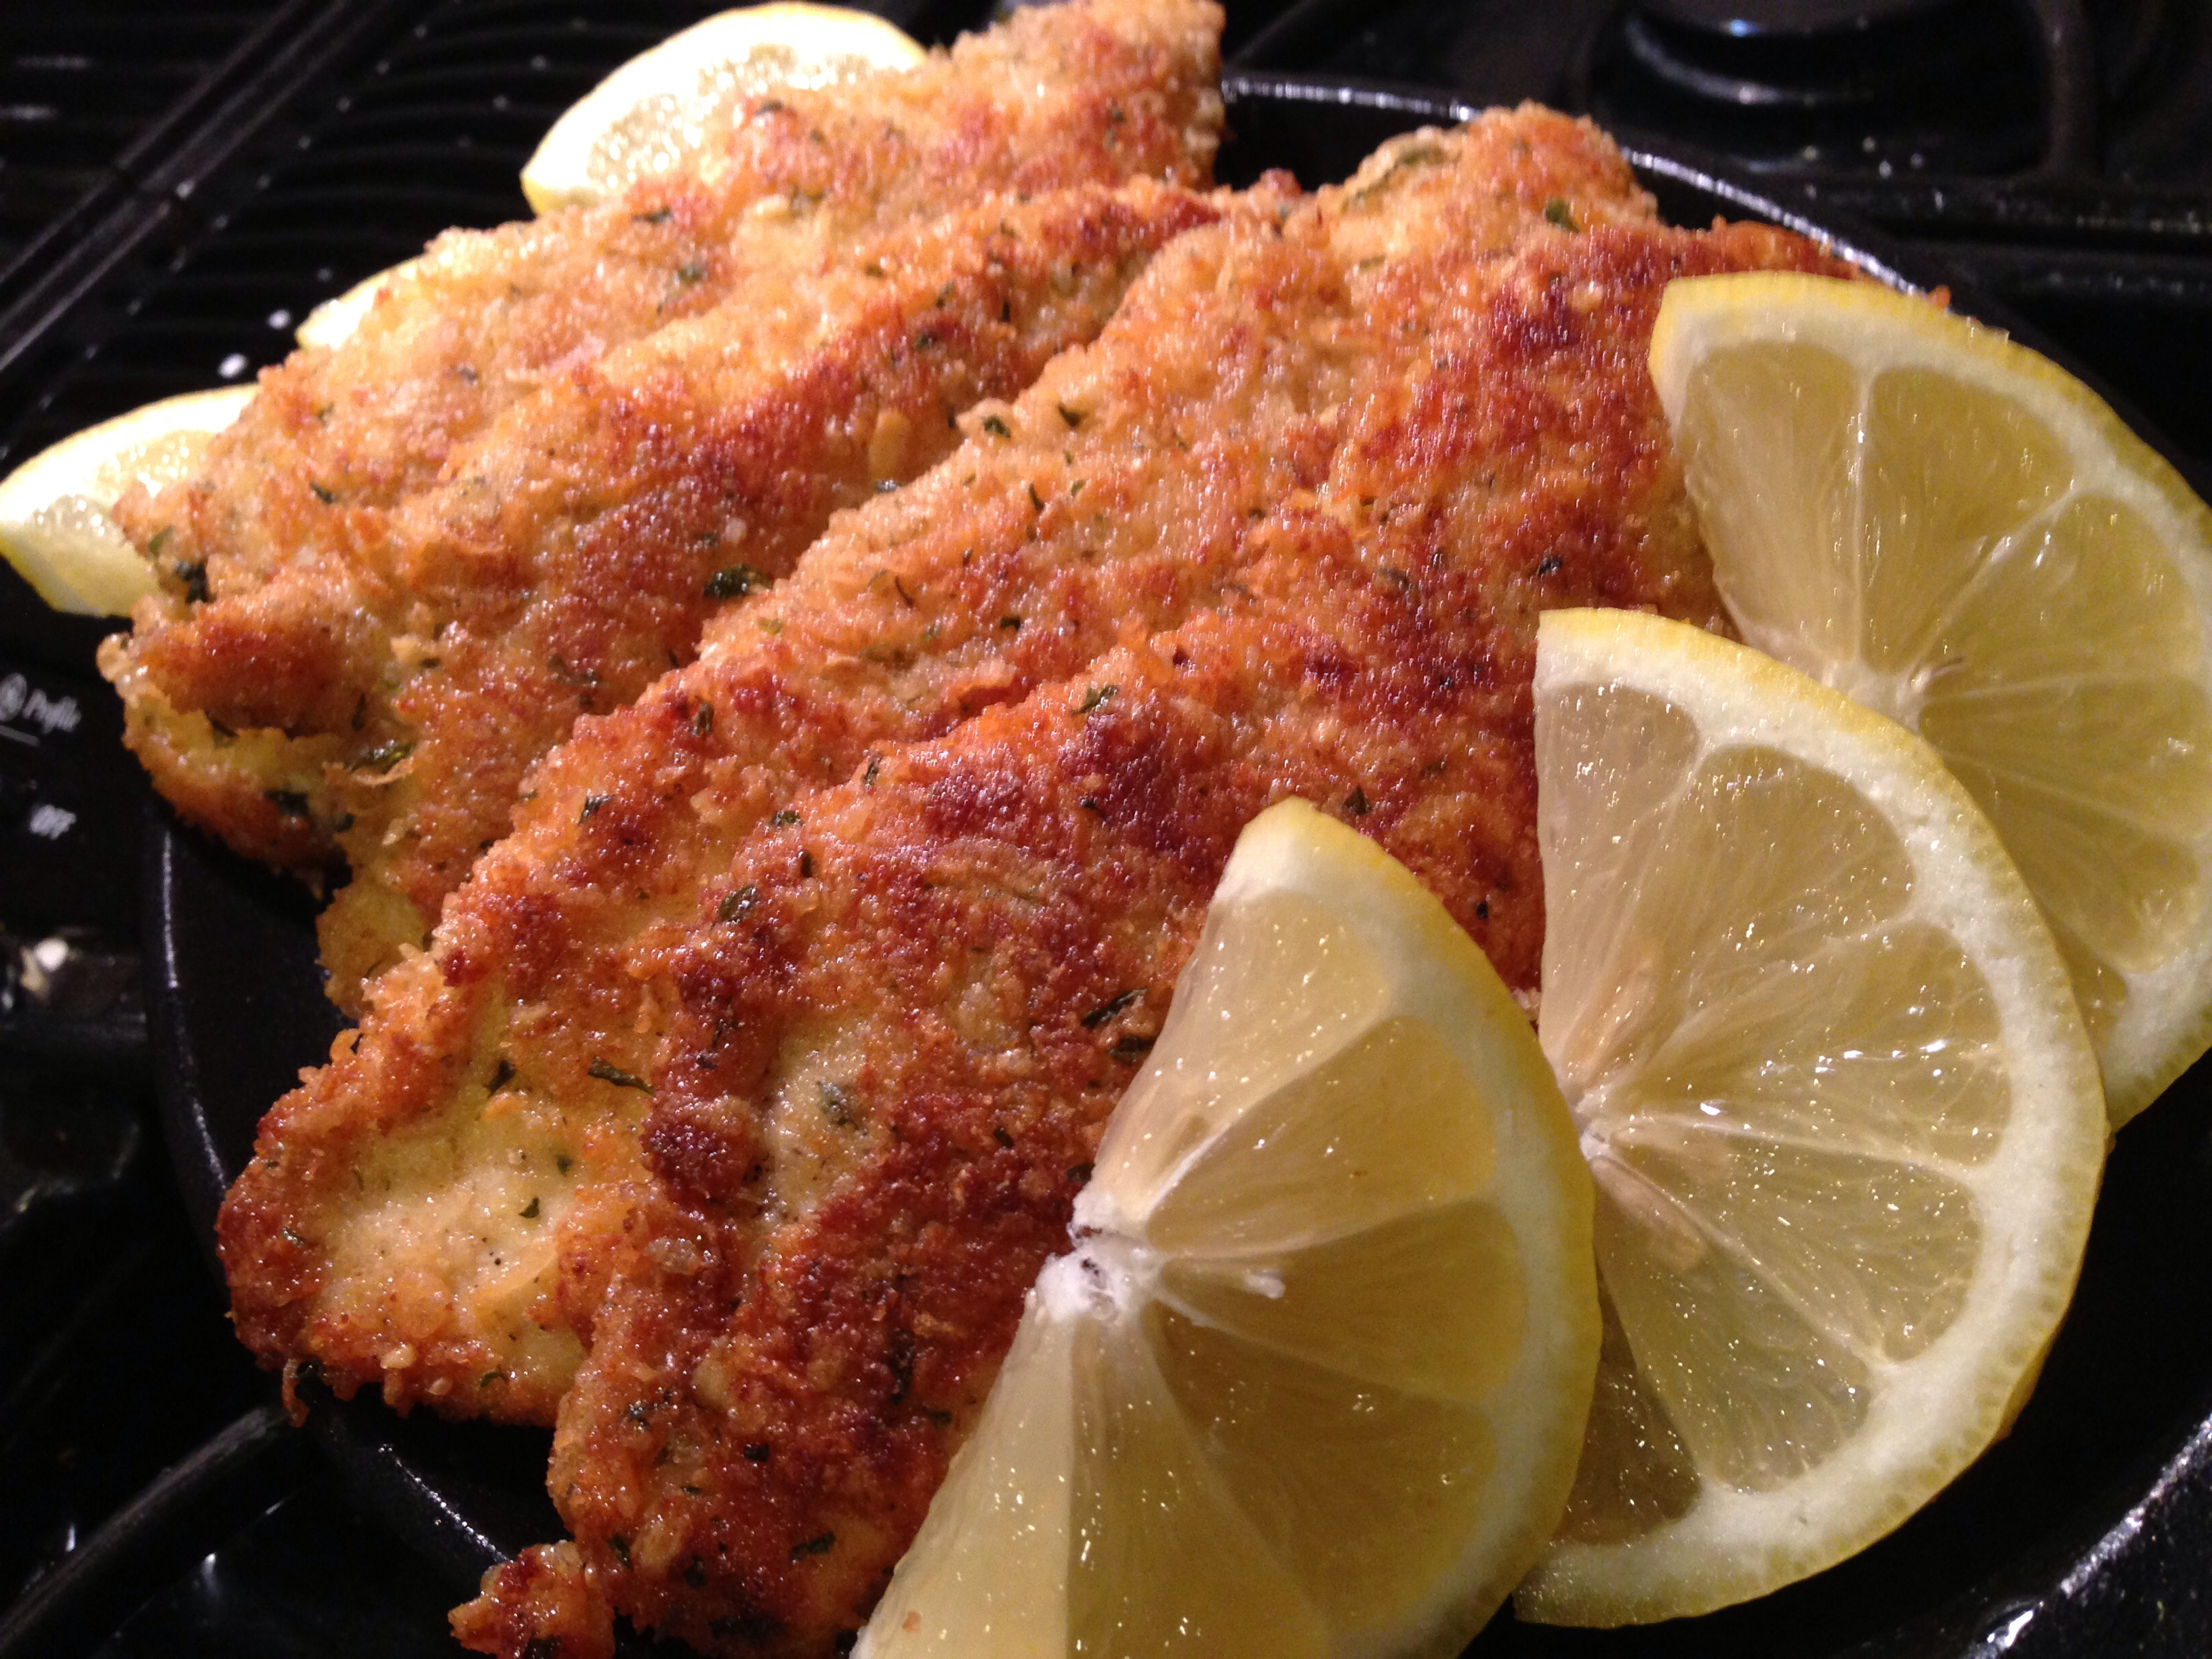 Egyptian Chicken Panne Breaded Fried Chicken Breasts